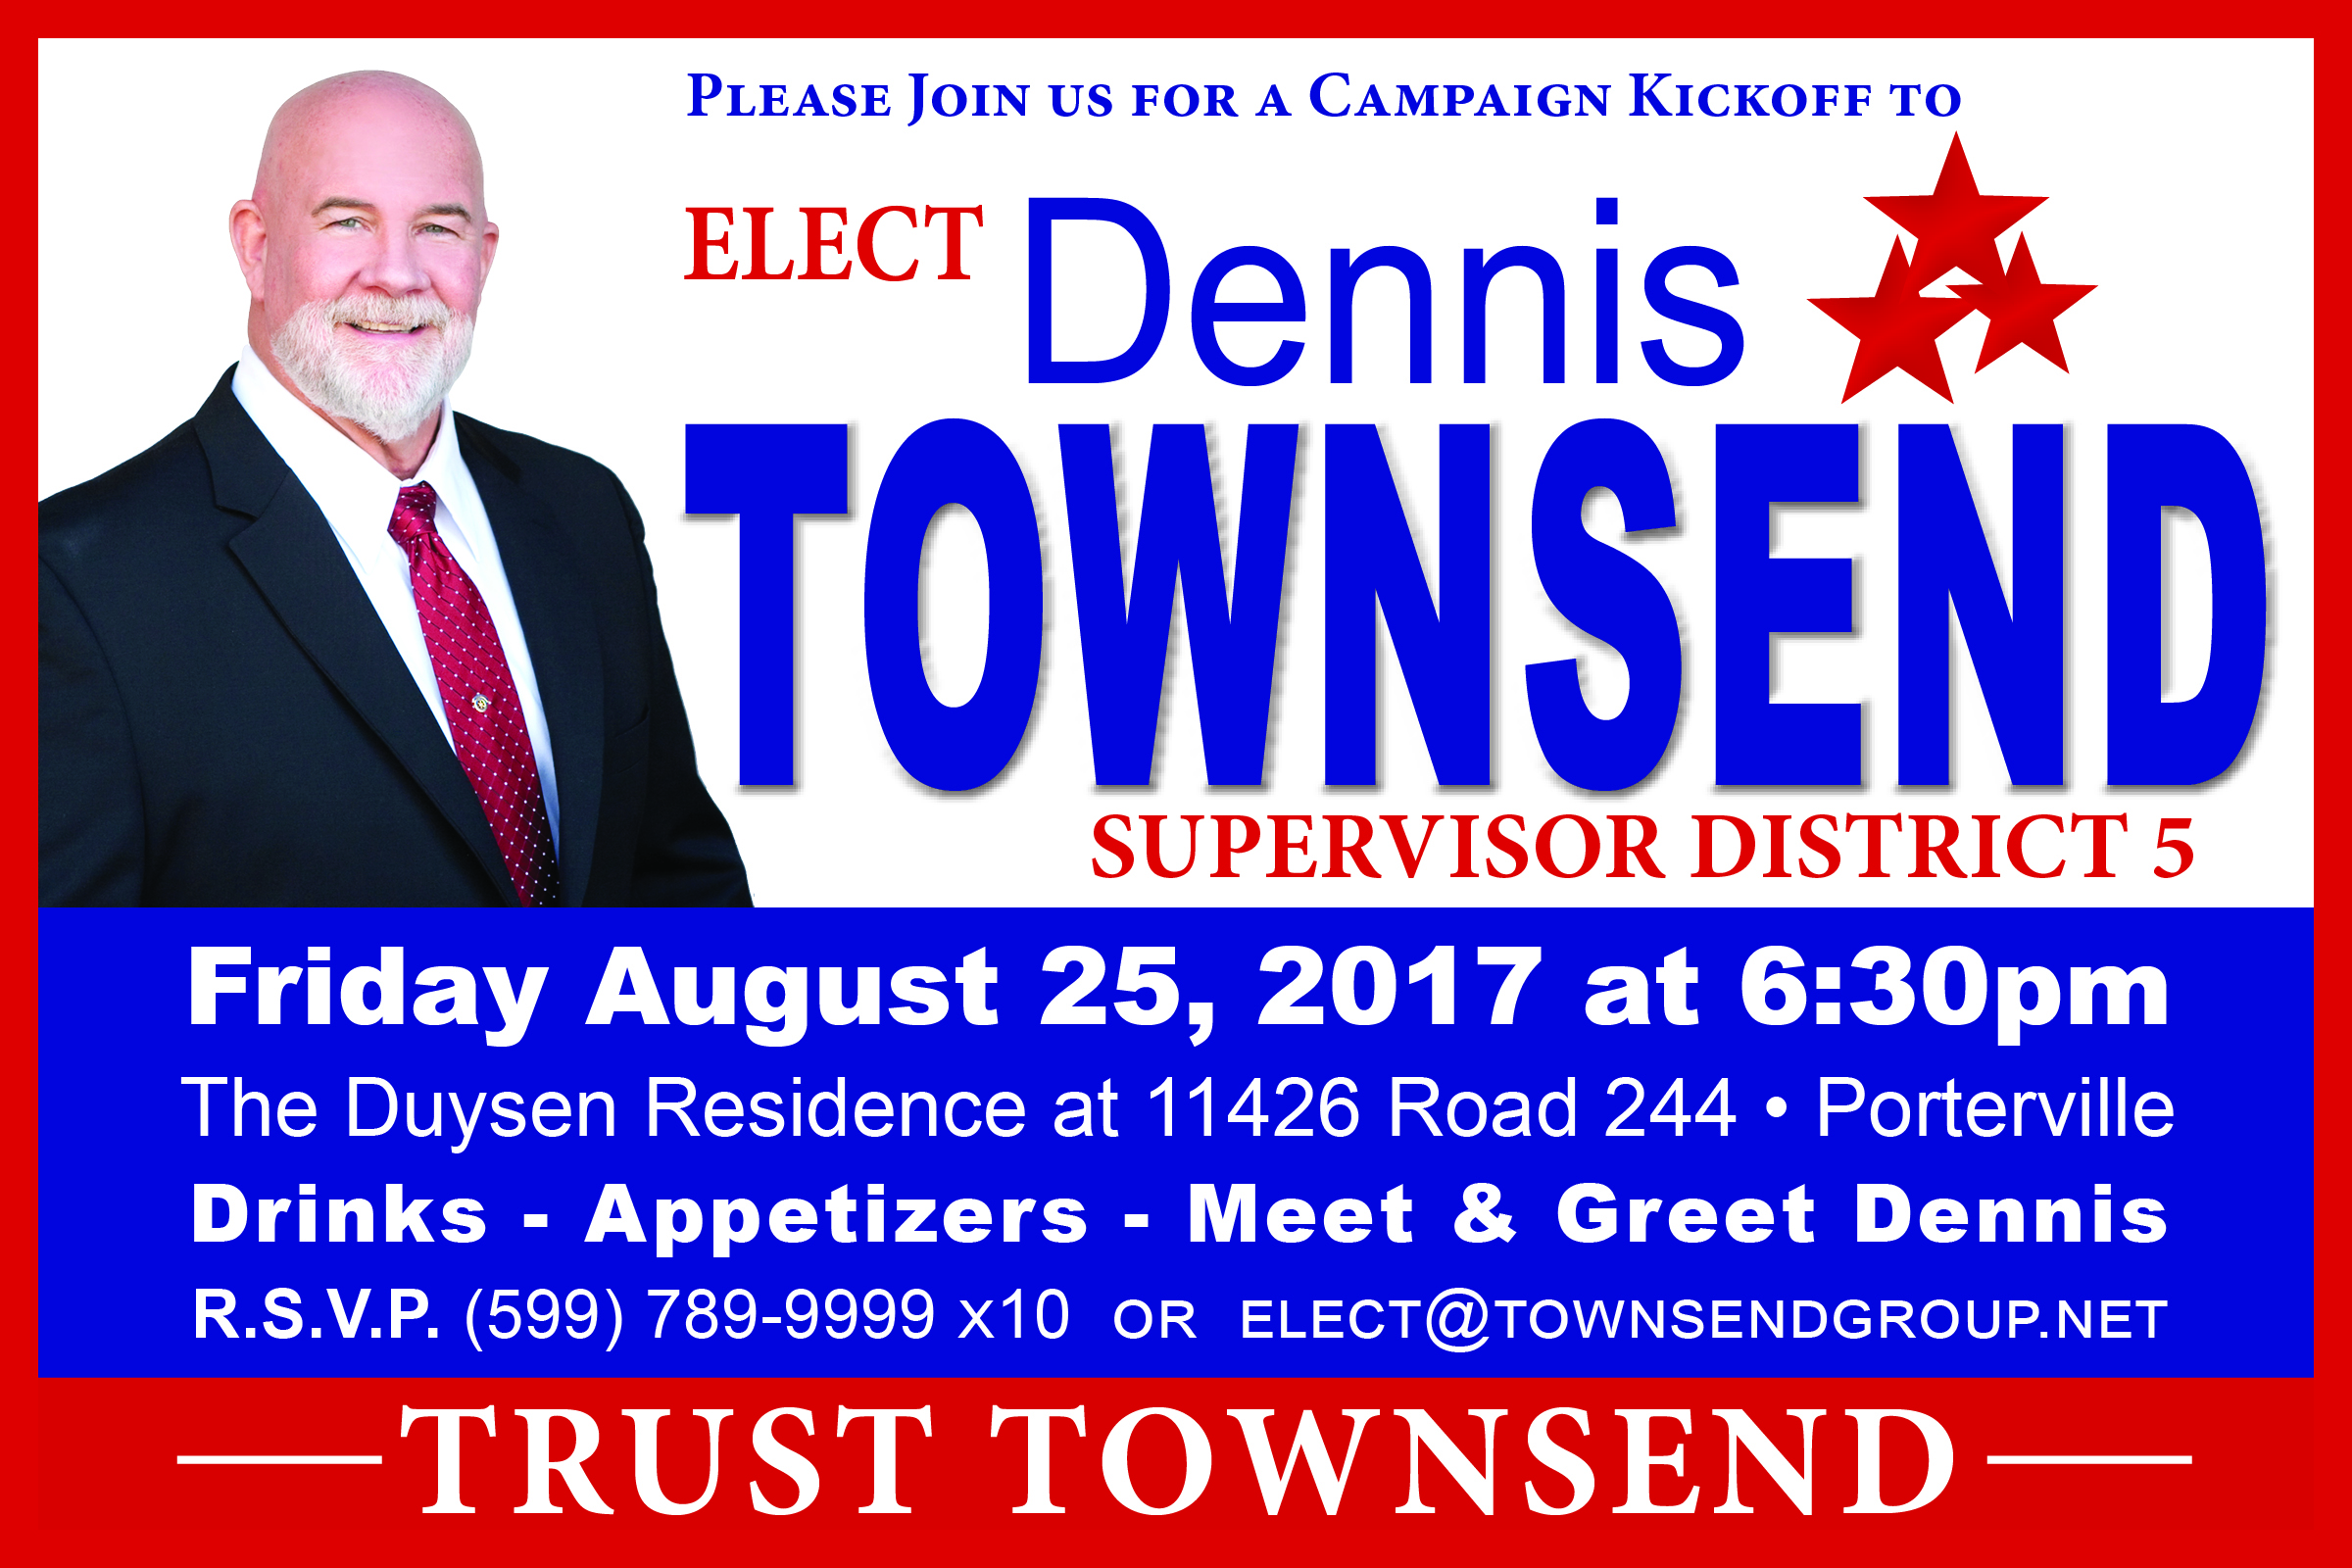 CAMPAIGN KICKOFF FOR DENNIS TOWNSEND - 5th SUPERVISORIAL DISTRICT